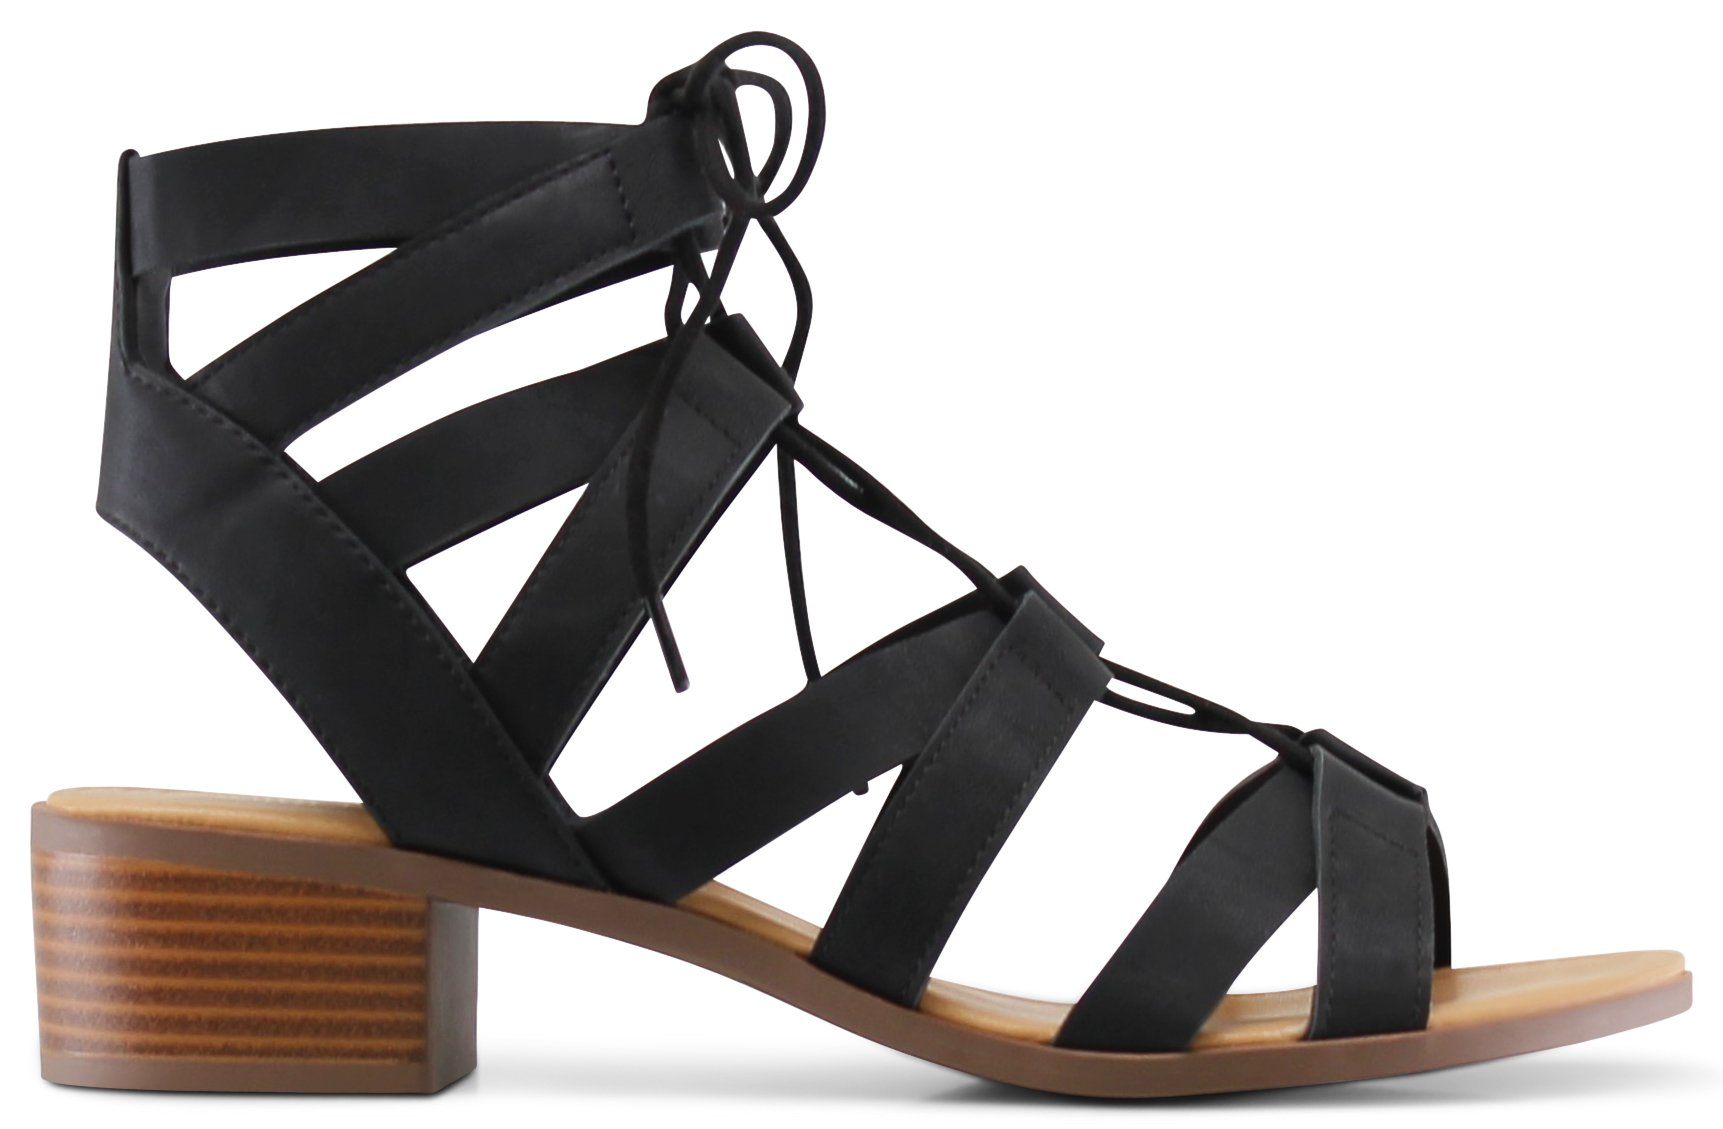 MARCOREPUBLIC Zurich Open Toe Gladiator Chunky Block Stacked Heels Sandals - (Black) - 11